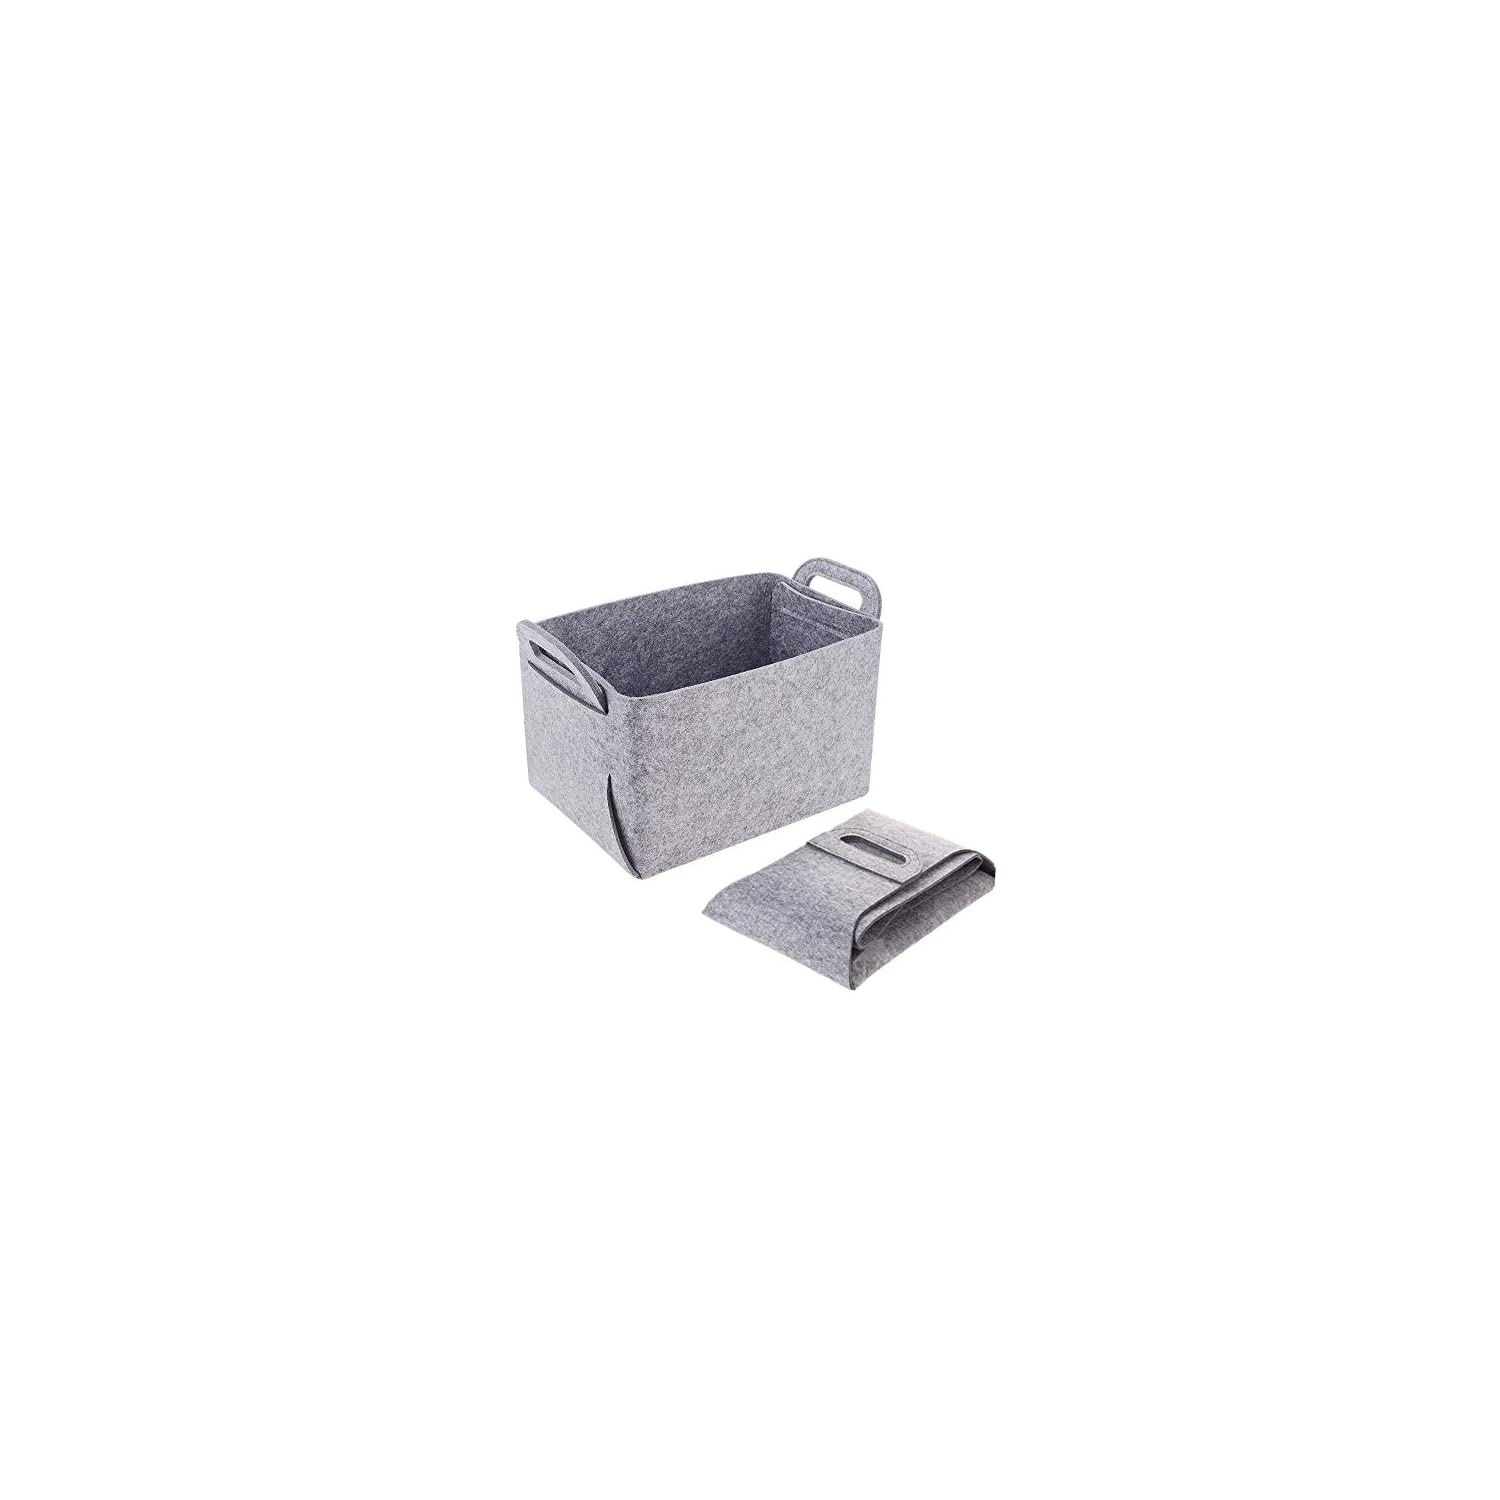 POLATU Soft Felt Storage Basket/Bin with Handles, Collapsible & Convenient Storage Solution for Office, Bedroom, Closet, Toys, Laundry(Light Gray,S)